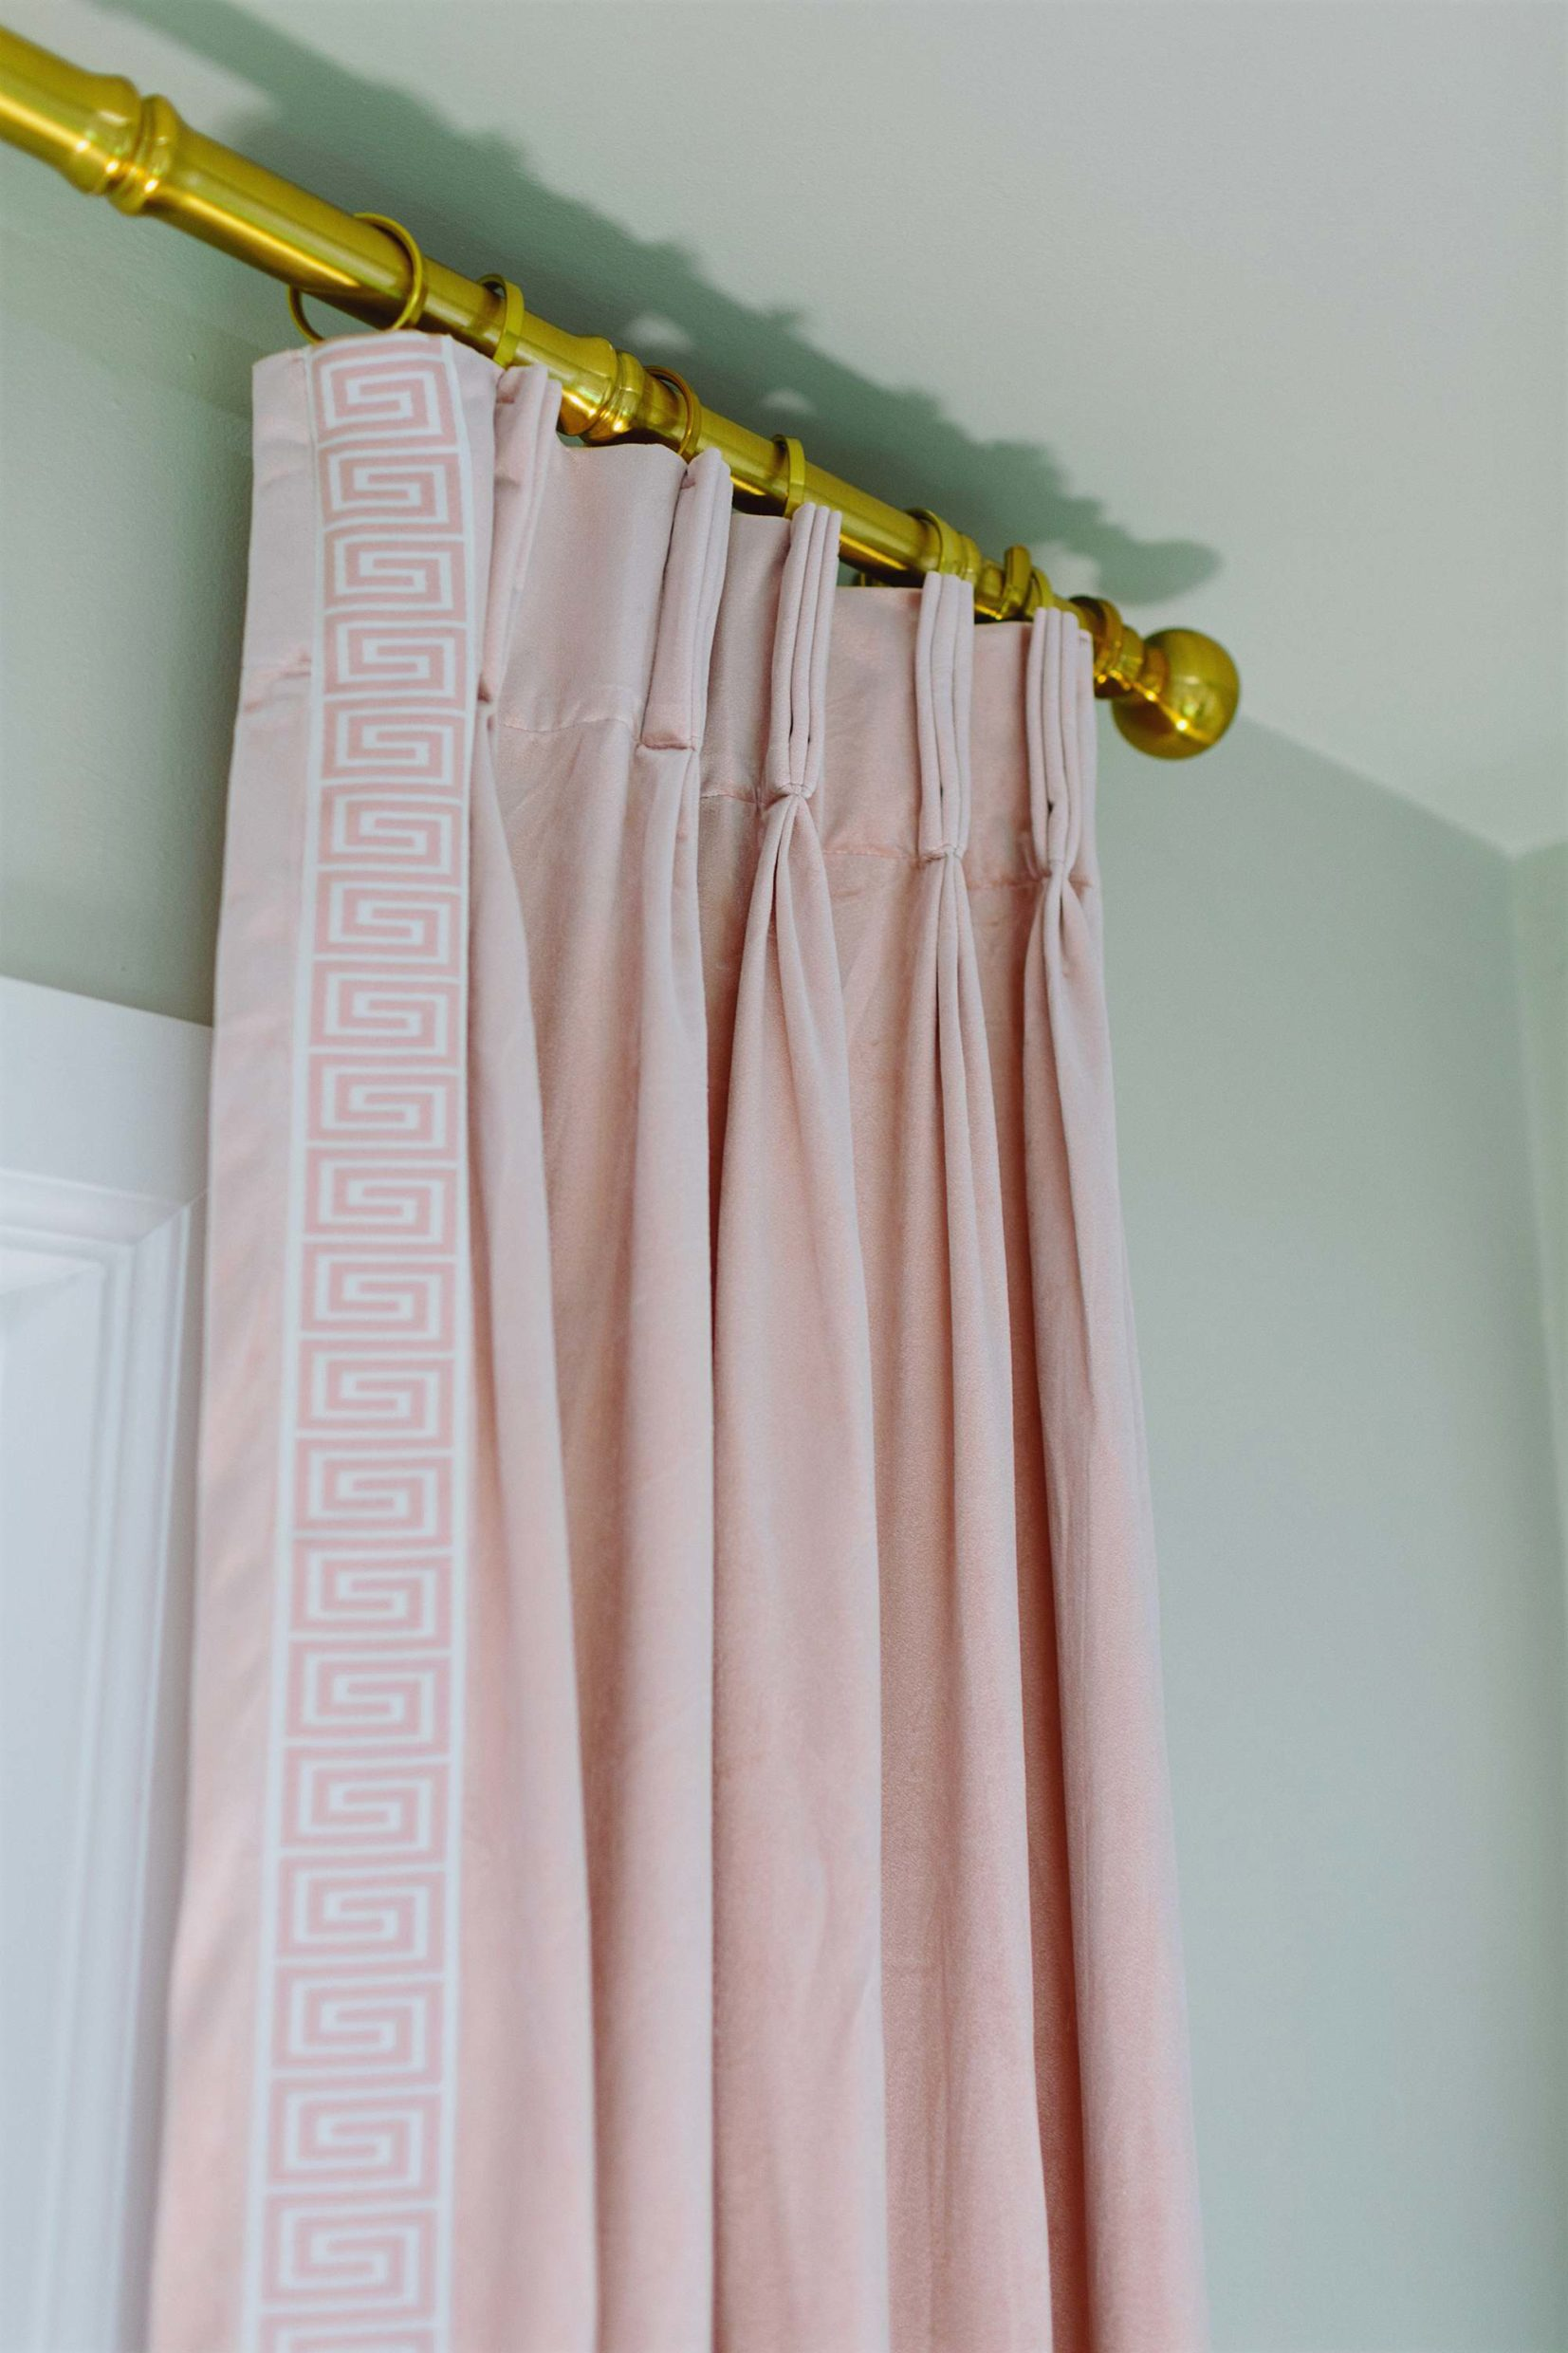 diy make it look like custom curtains with store bought pleated curtains - see blog post